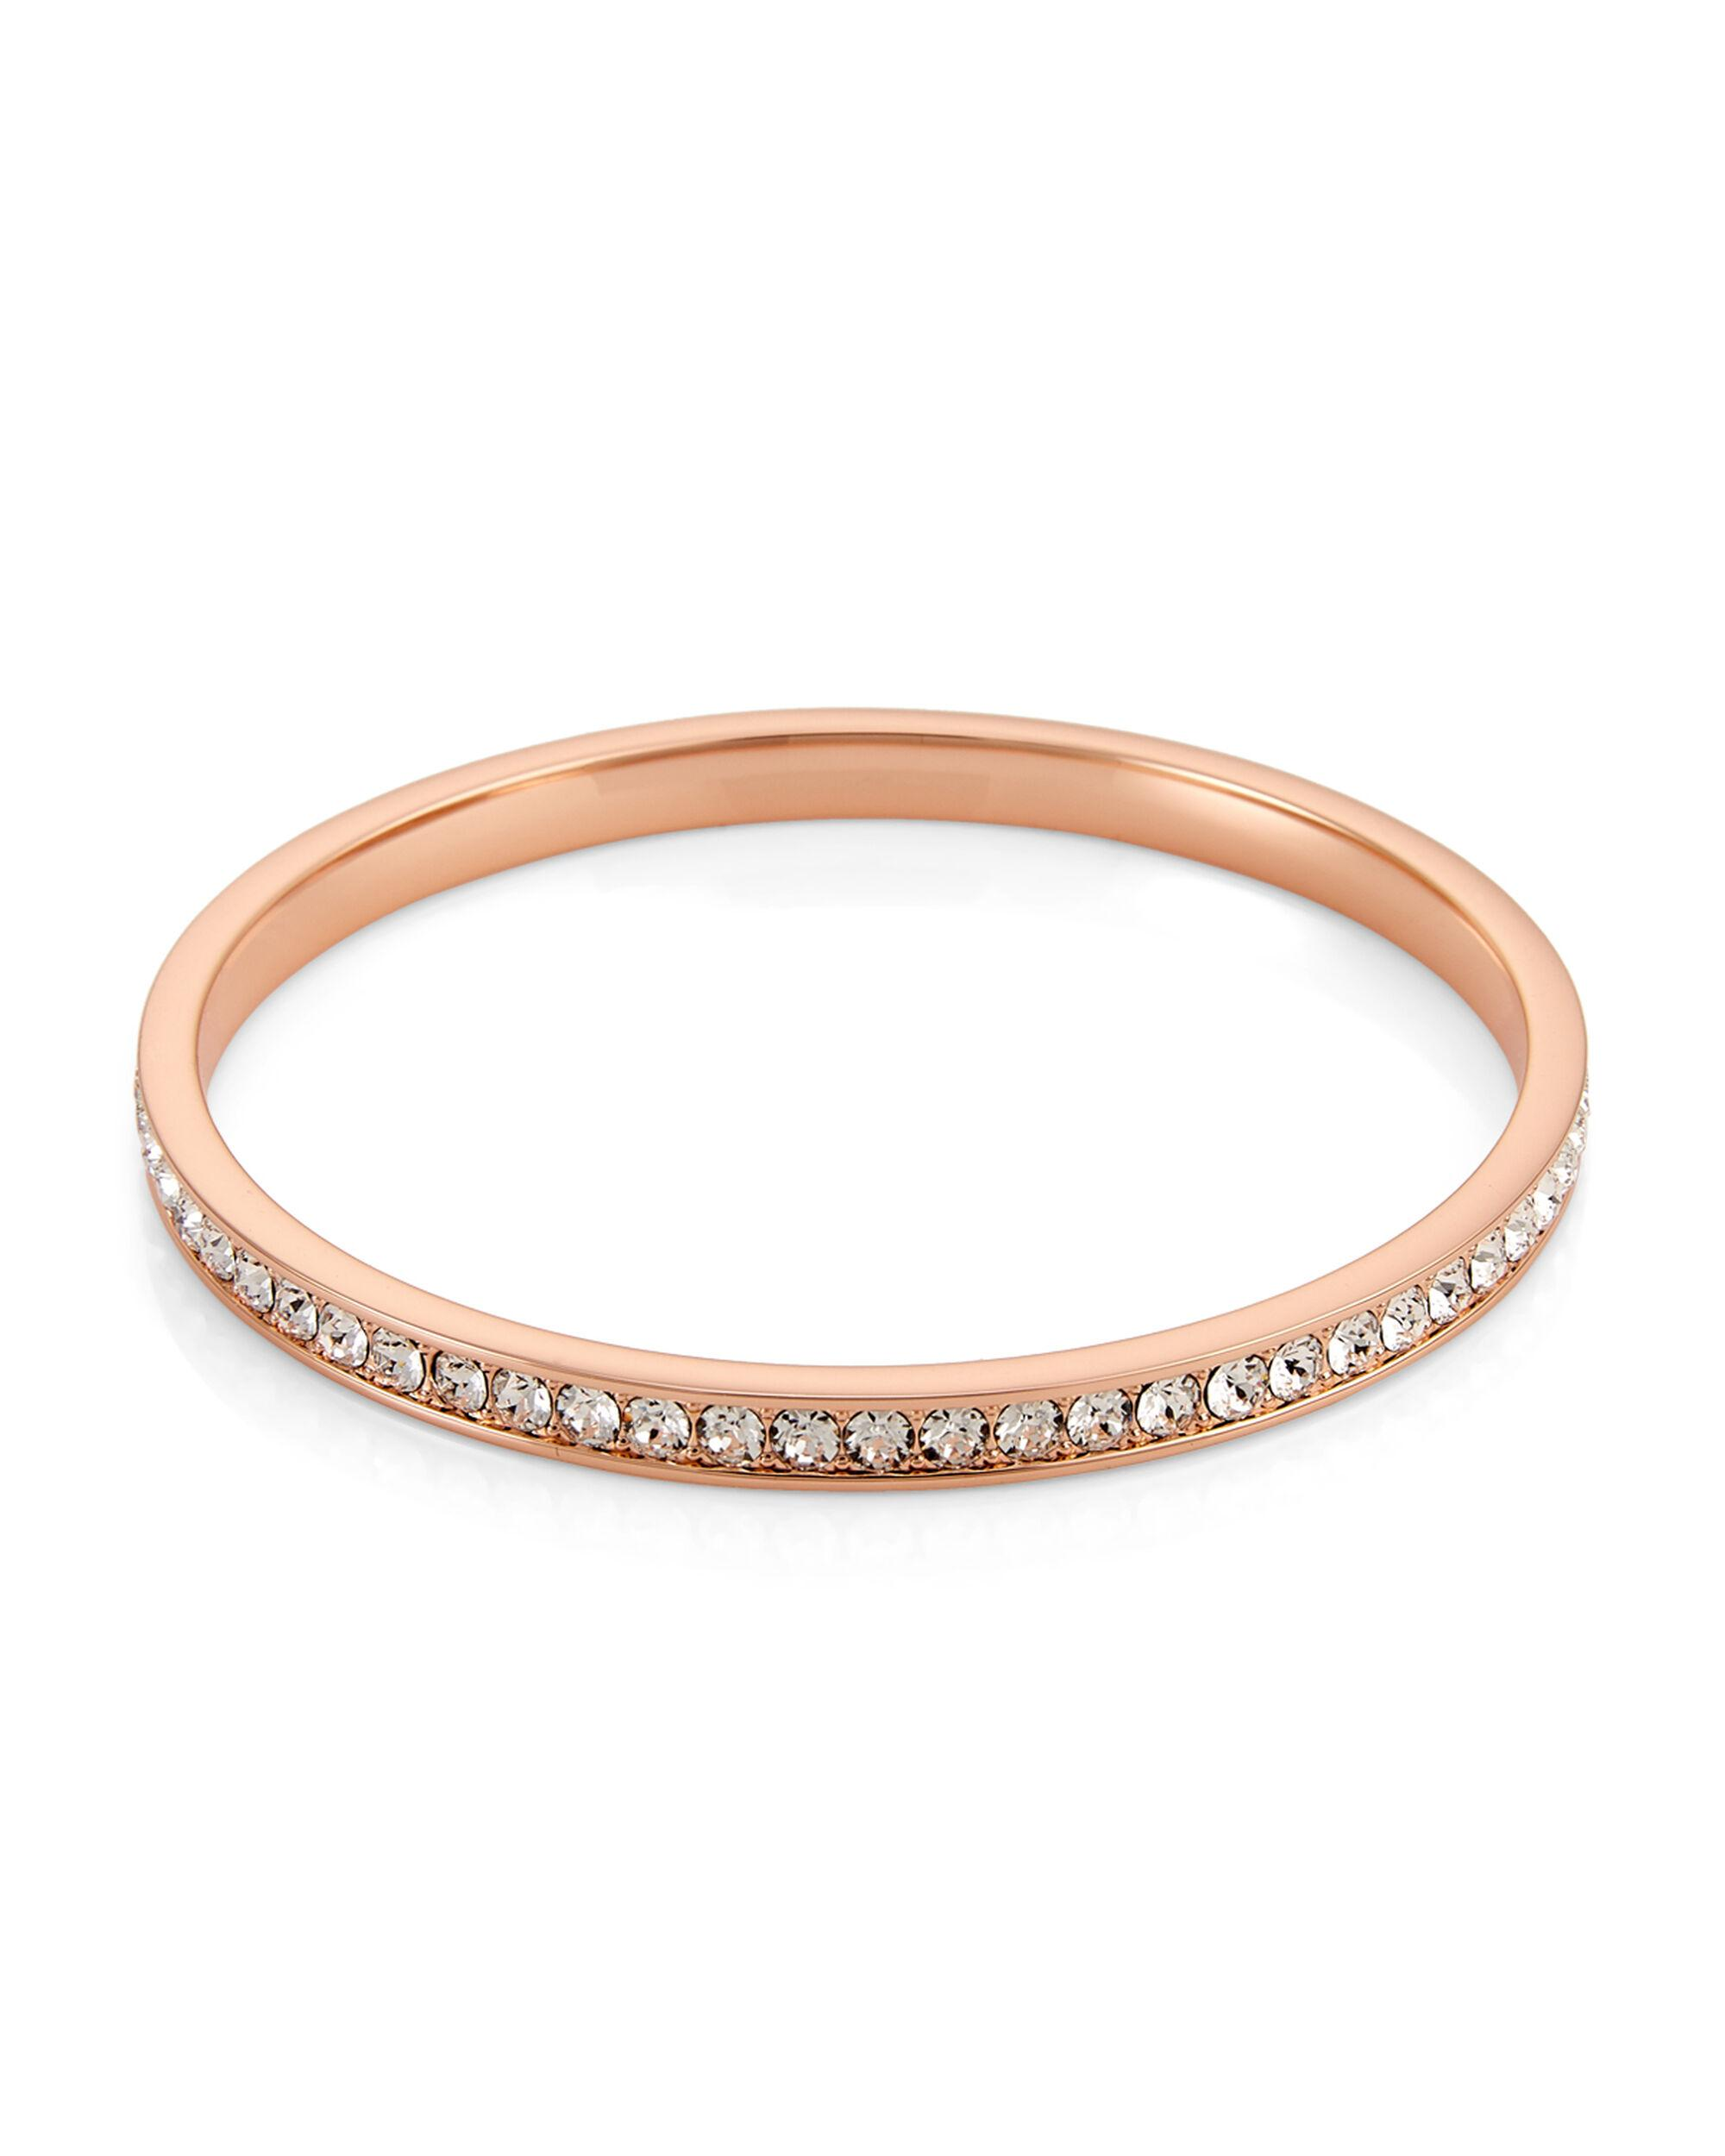 7636ddfa8a1c7 Ted Baker Rose Gold-tone Clem Narrow Crystal Band Bangle in Metallic ...